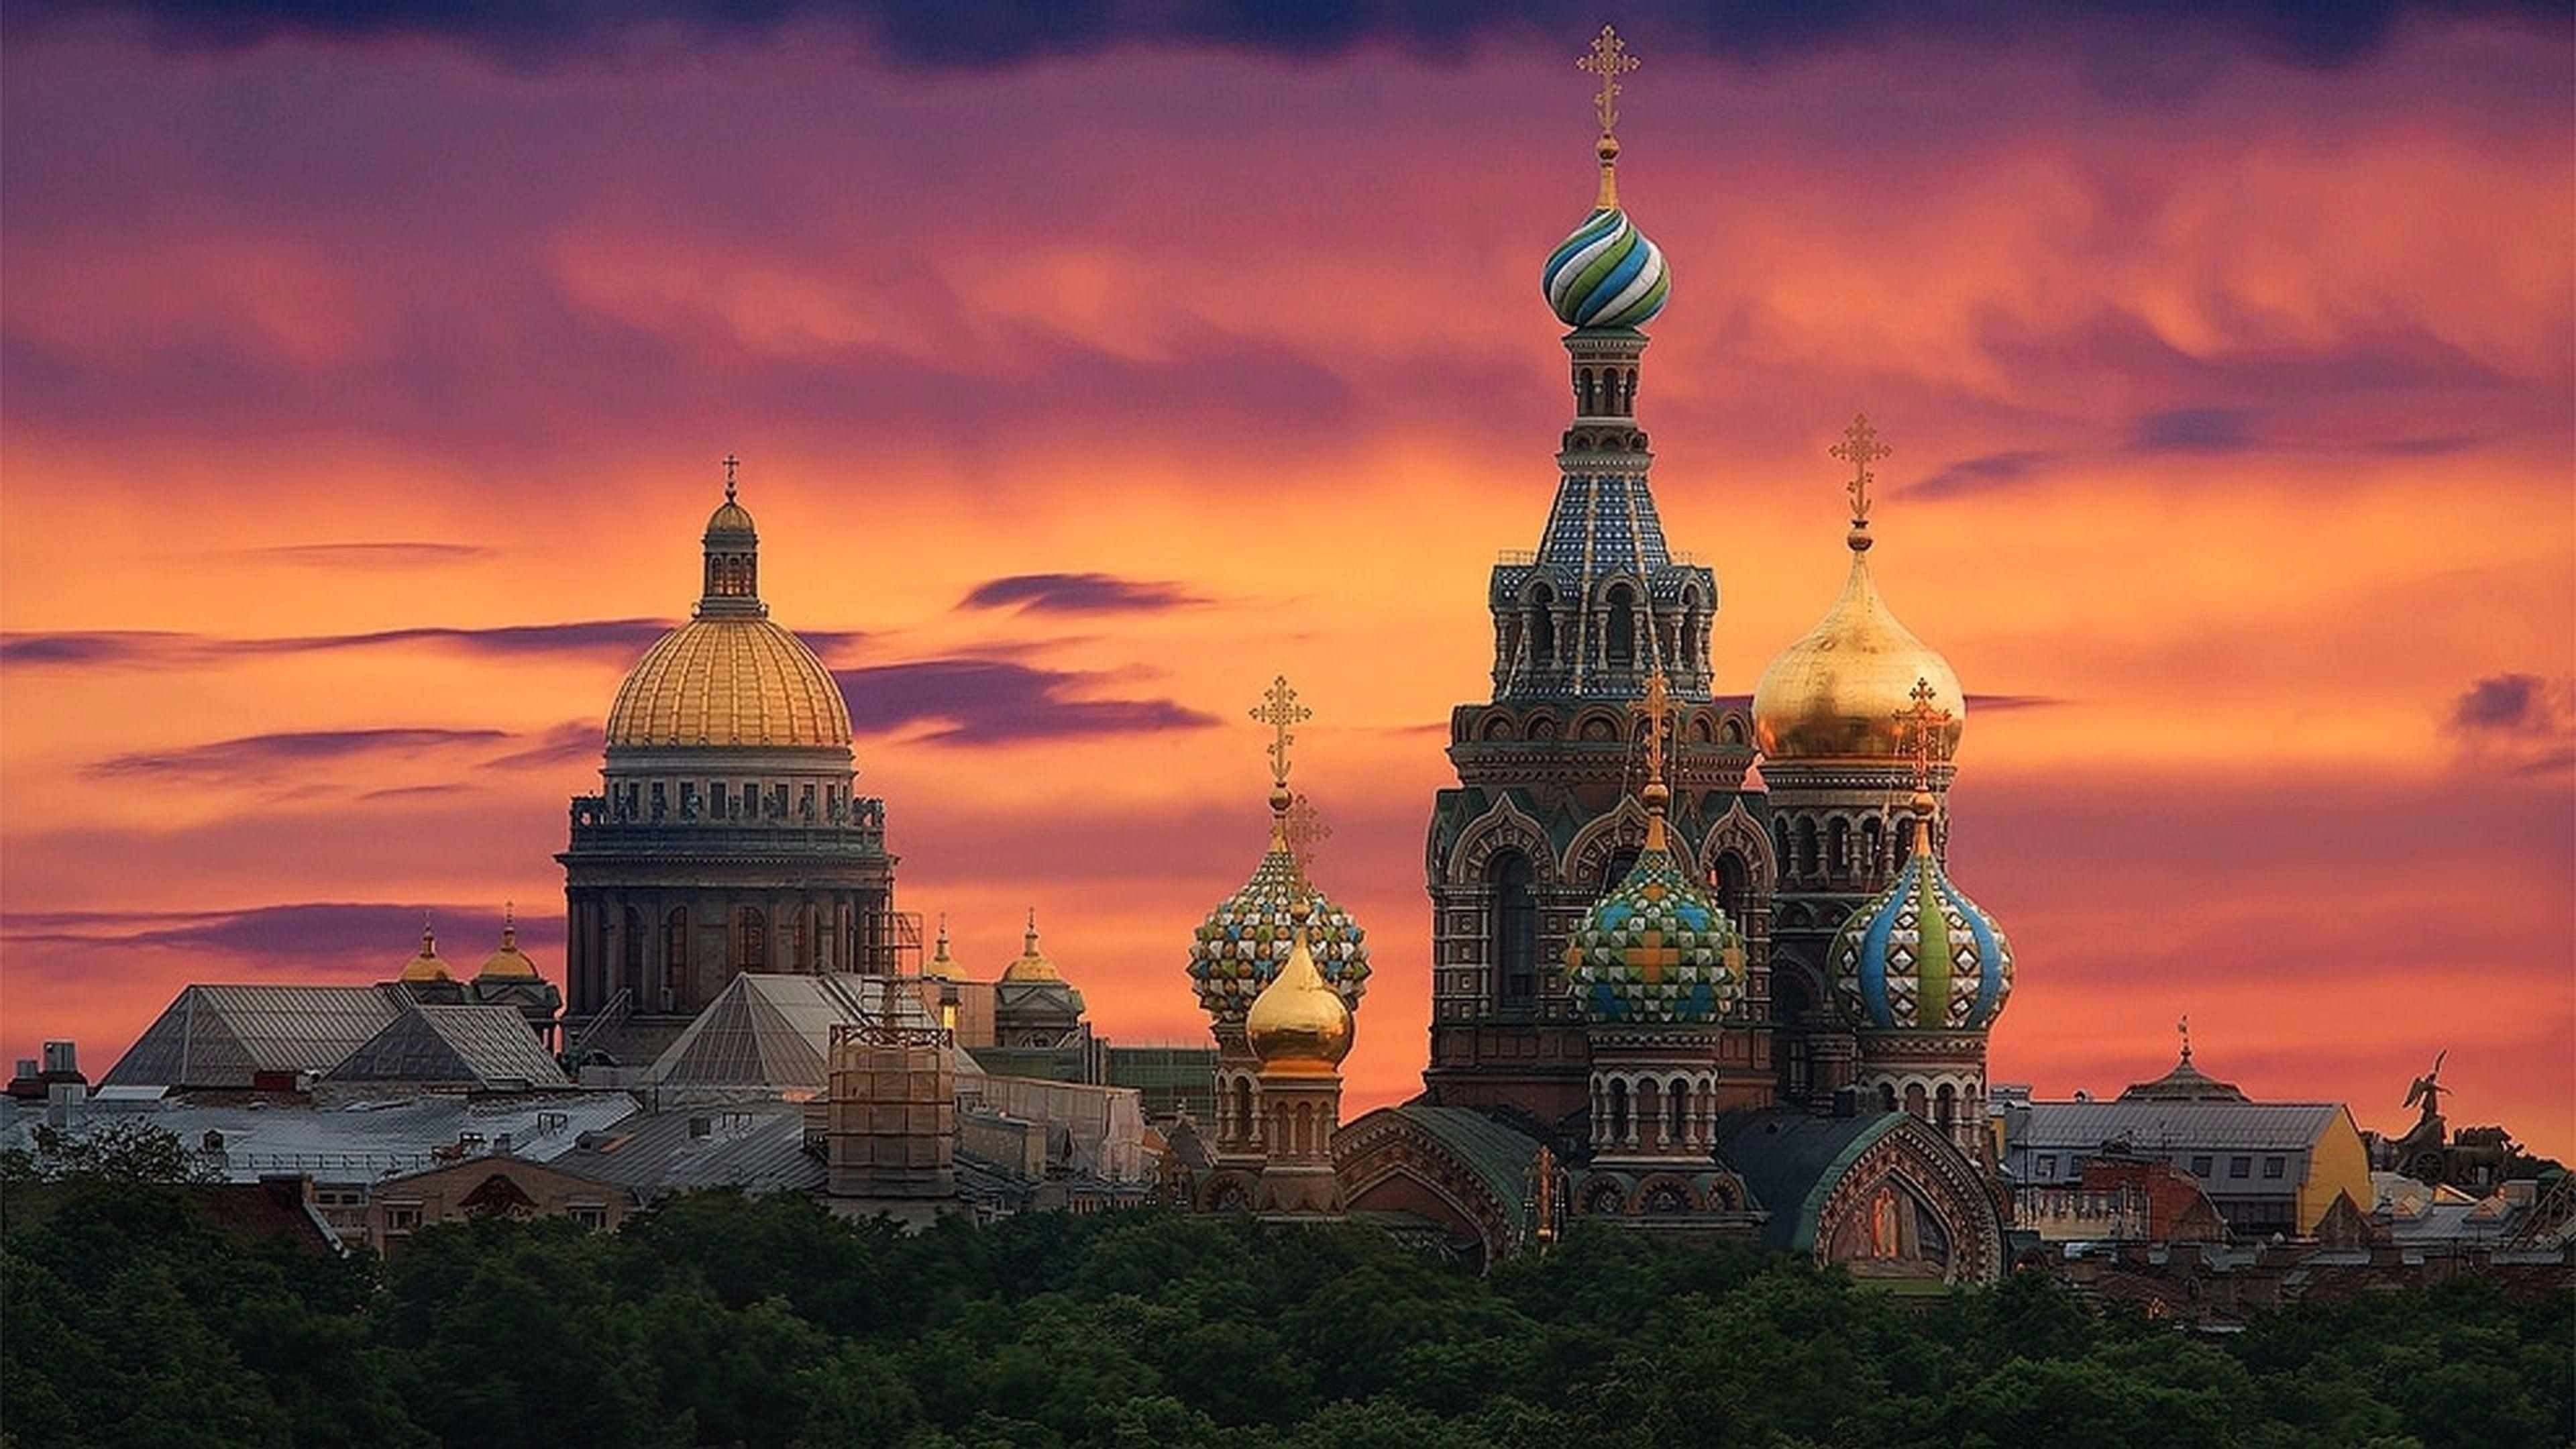 Church of the Savior on Spilled Blood - St. Petersburg, Russia wallpaper